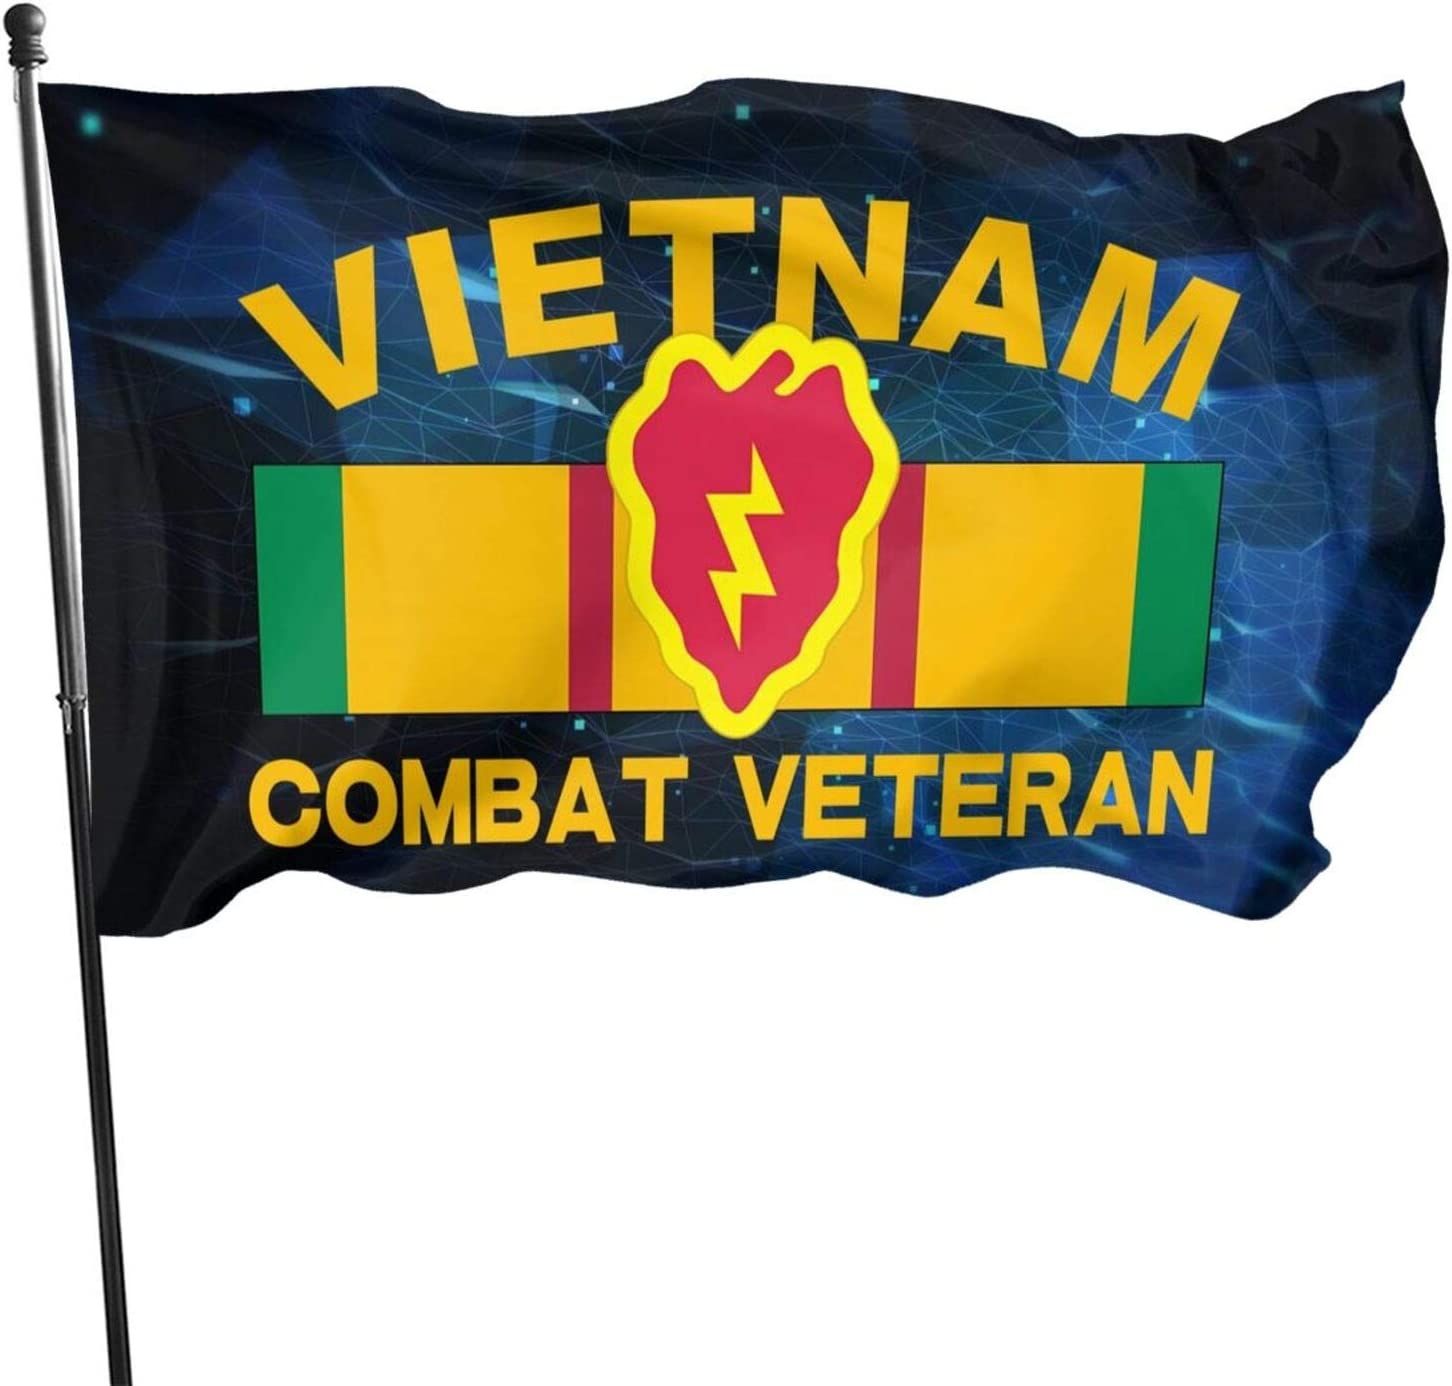 Ximengabc US Army Vietnam Veteran Ribbon with 25th Infantry Flag 3x5 Foot Flag Outdoor 100% Single-Layer Translucent Polyester 3'x5' Ft Banner for Garden Home